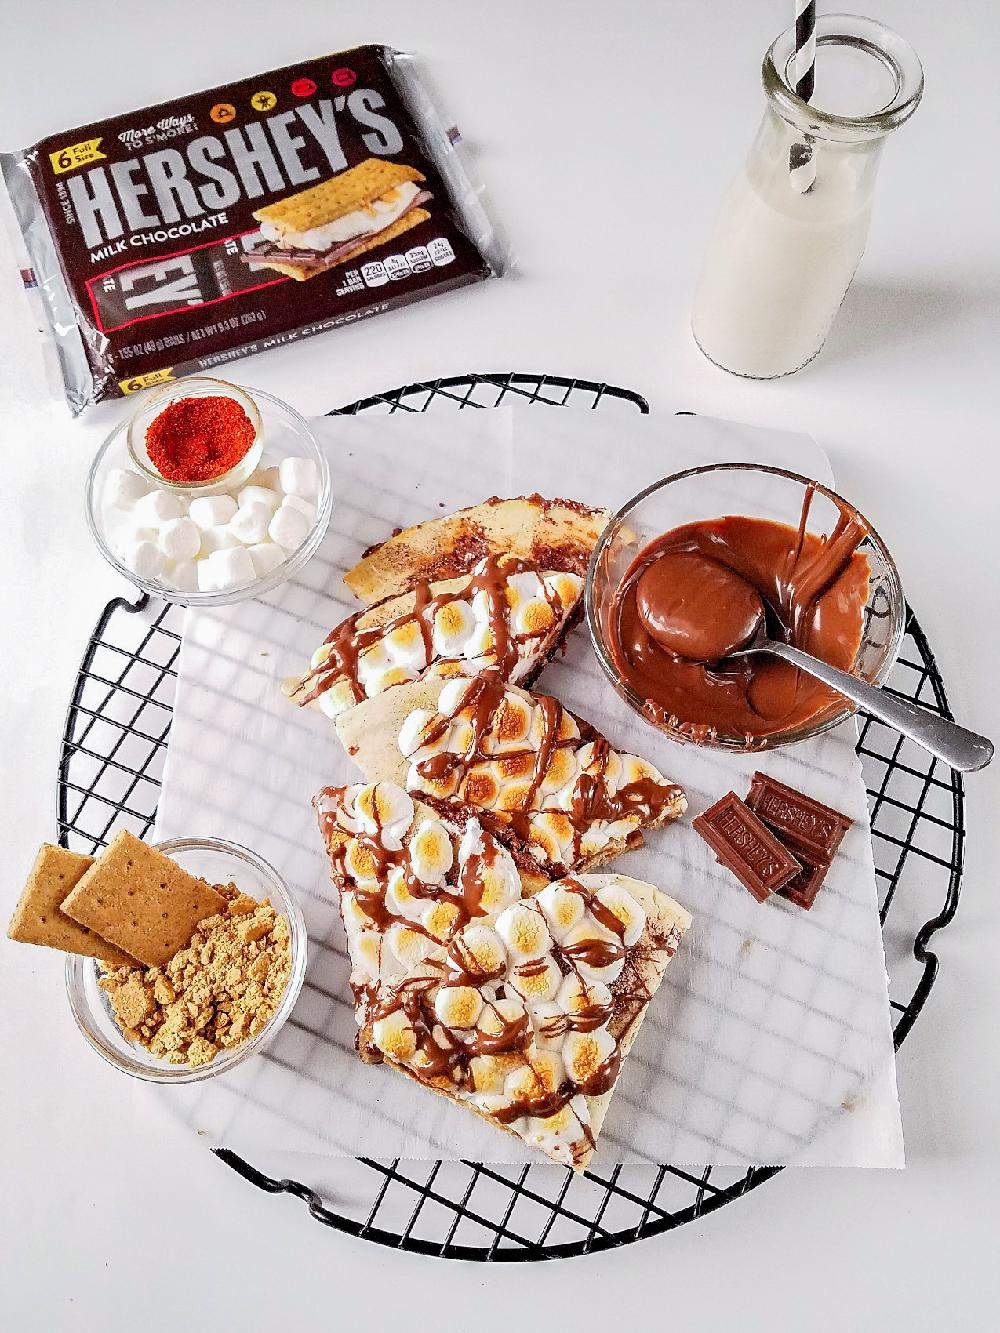 several pieces of s'mores quesadilla on a board with garnishing and milk